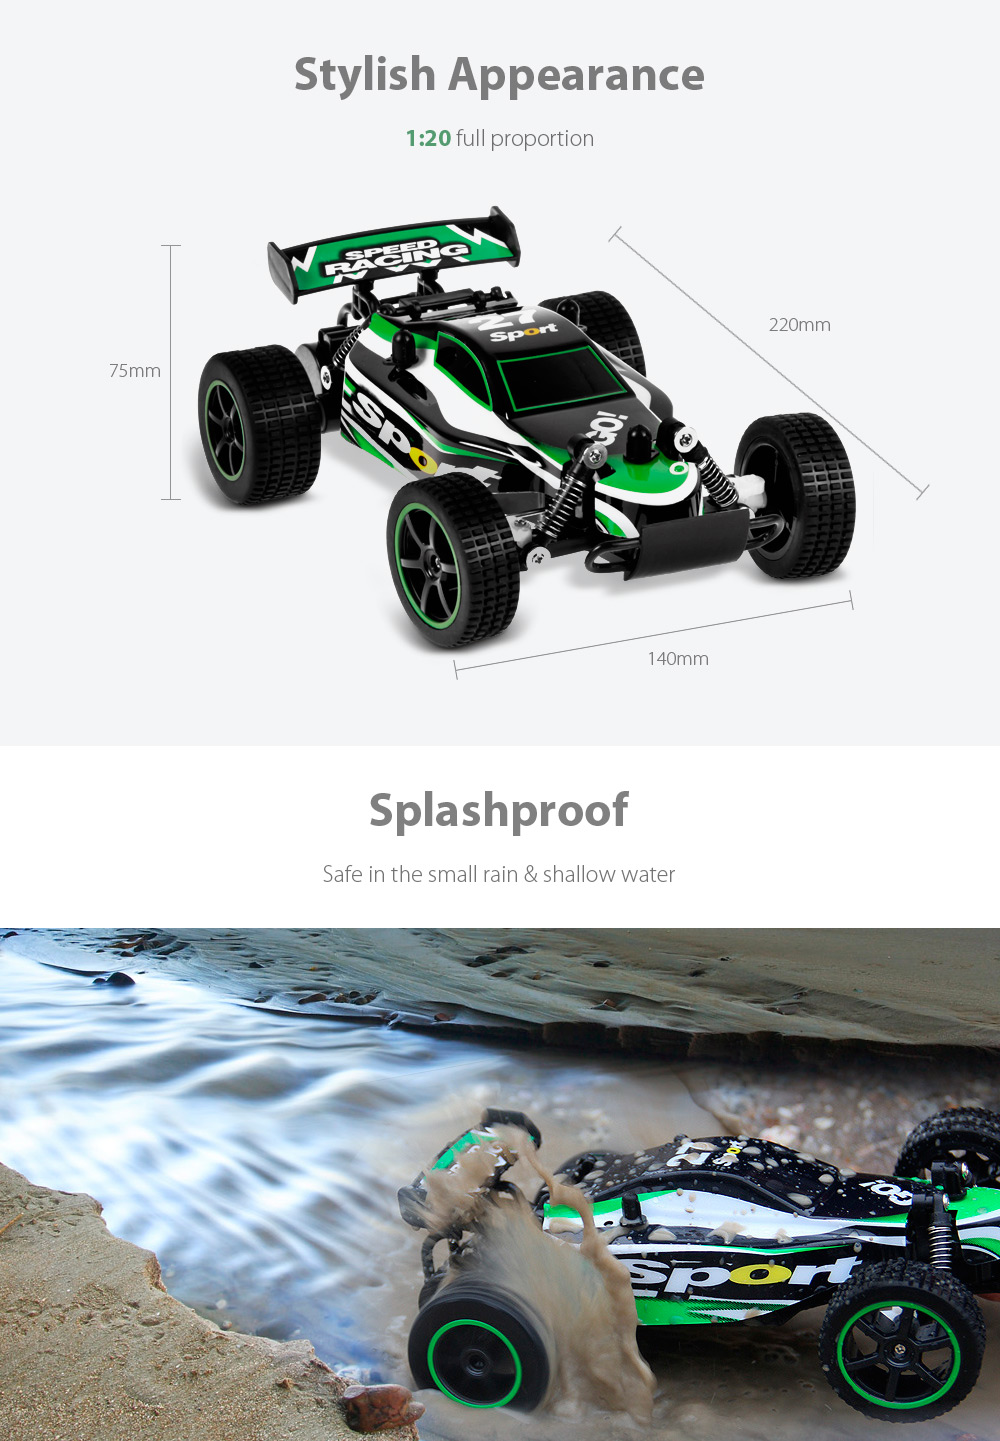 Splashproof / 2.4GHz 2WD / Impact-resistant PVC Shell- Green